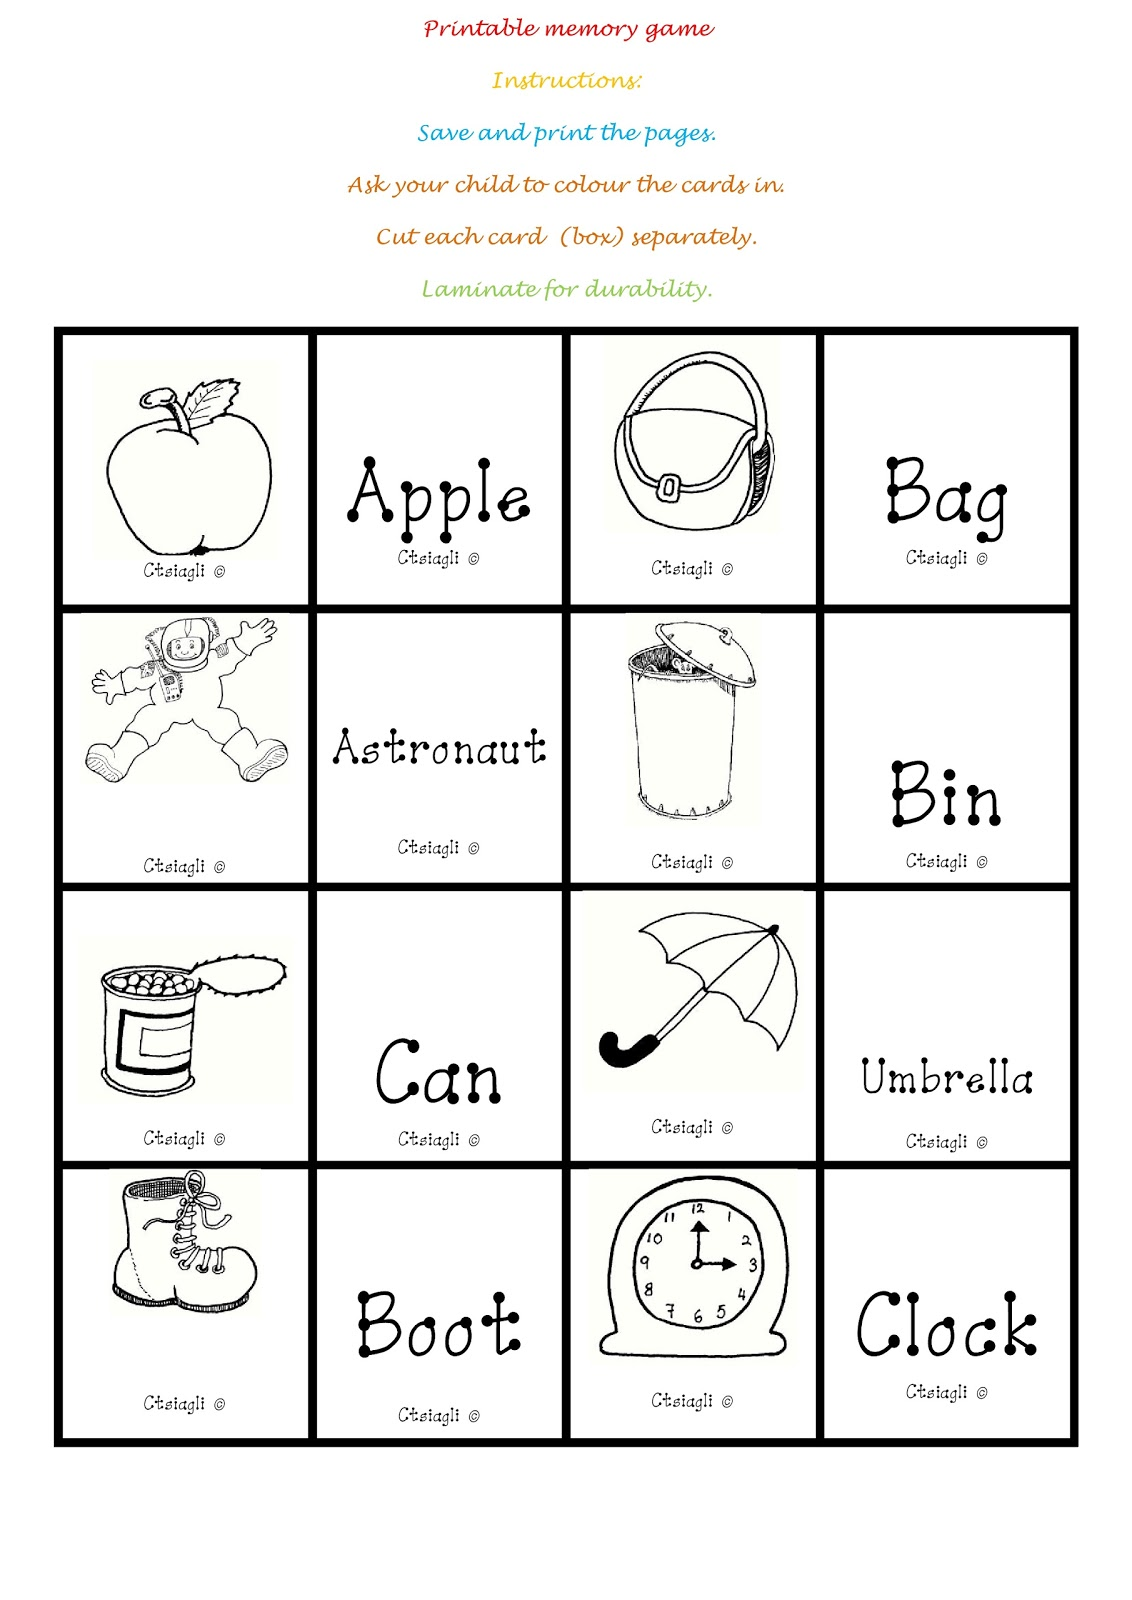 picture about Printable Memory Games named I,Instructor: Printable Memory Sport